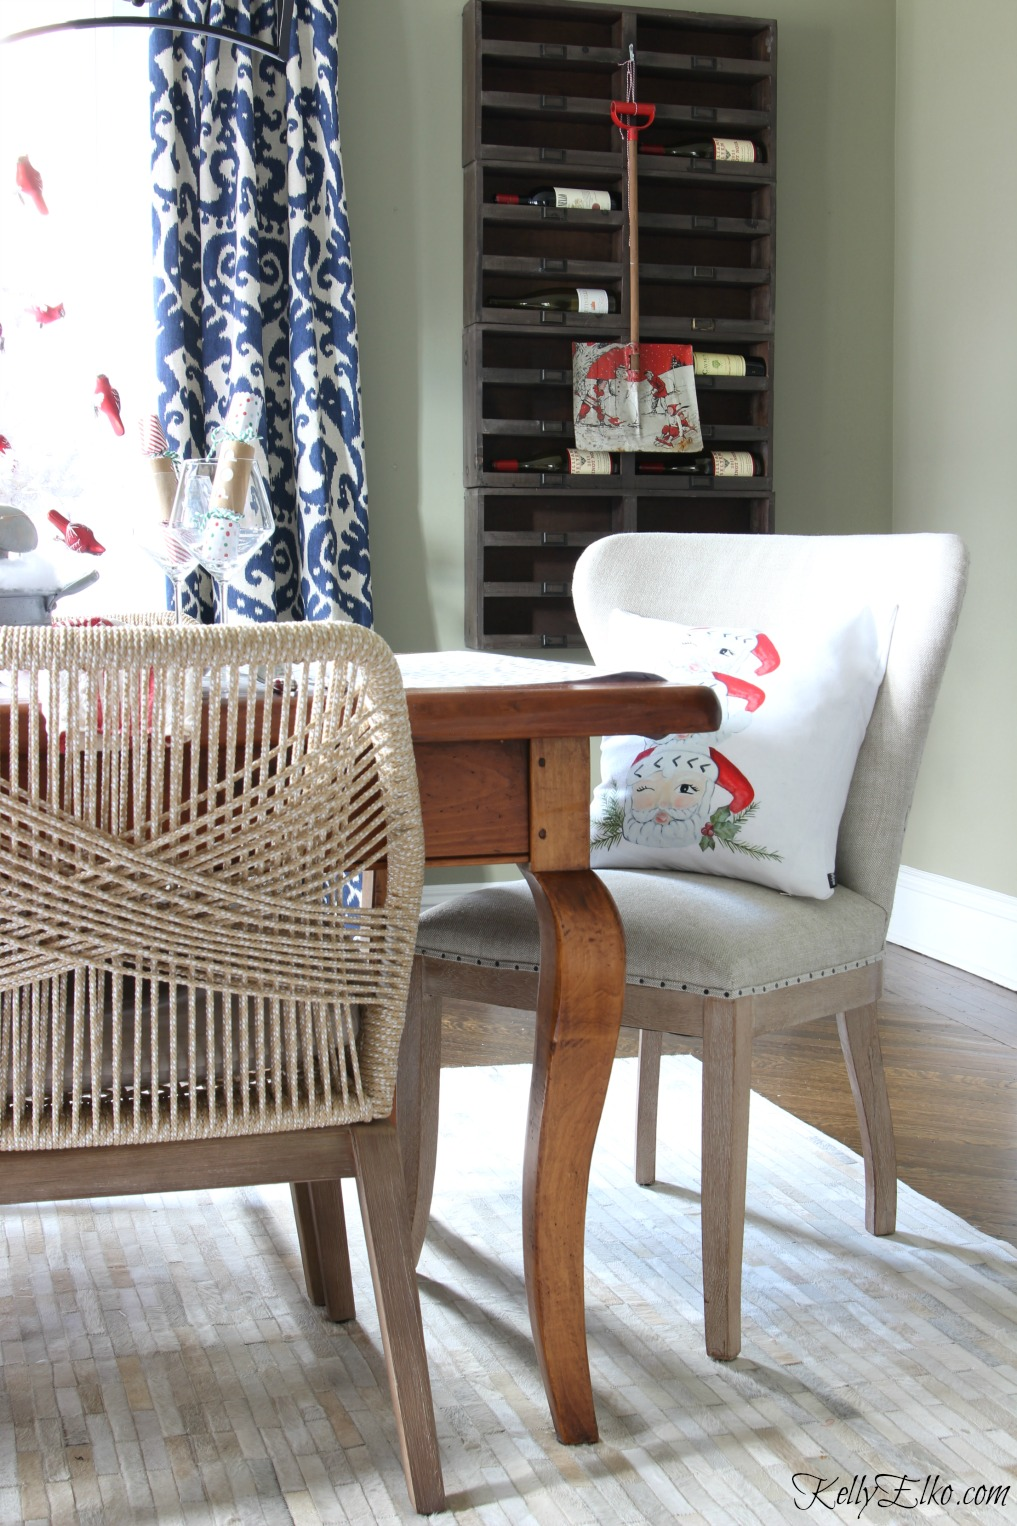 Love these amazing rope chairs in this festive Christmas dining room kellyelko.com